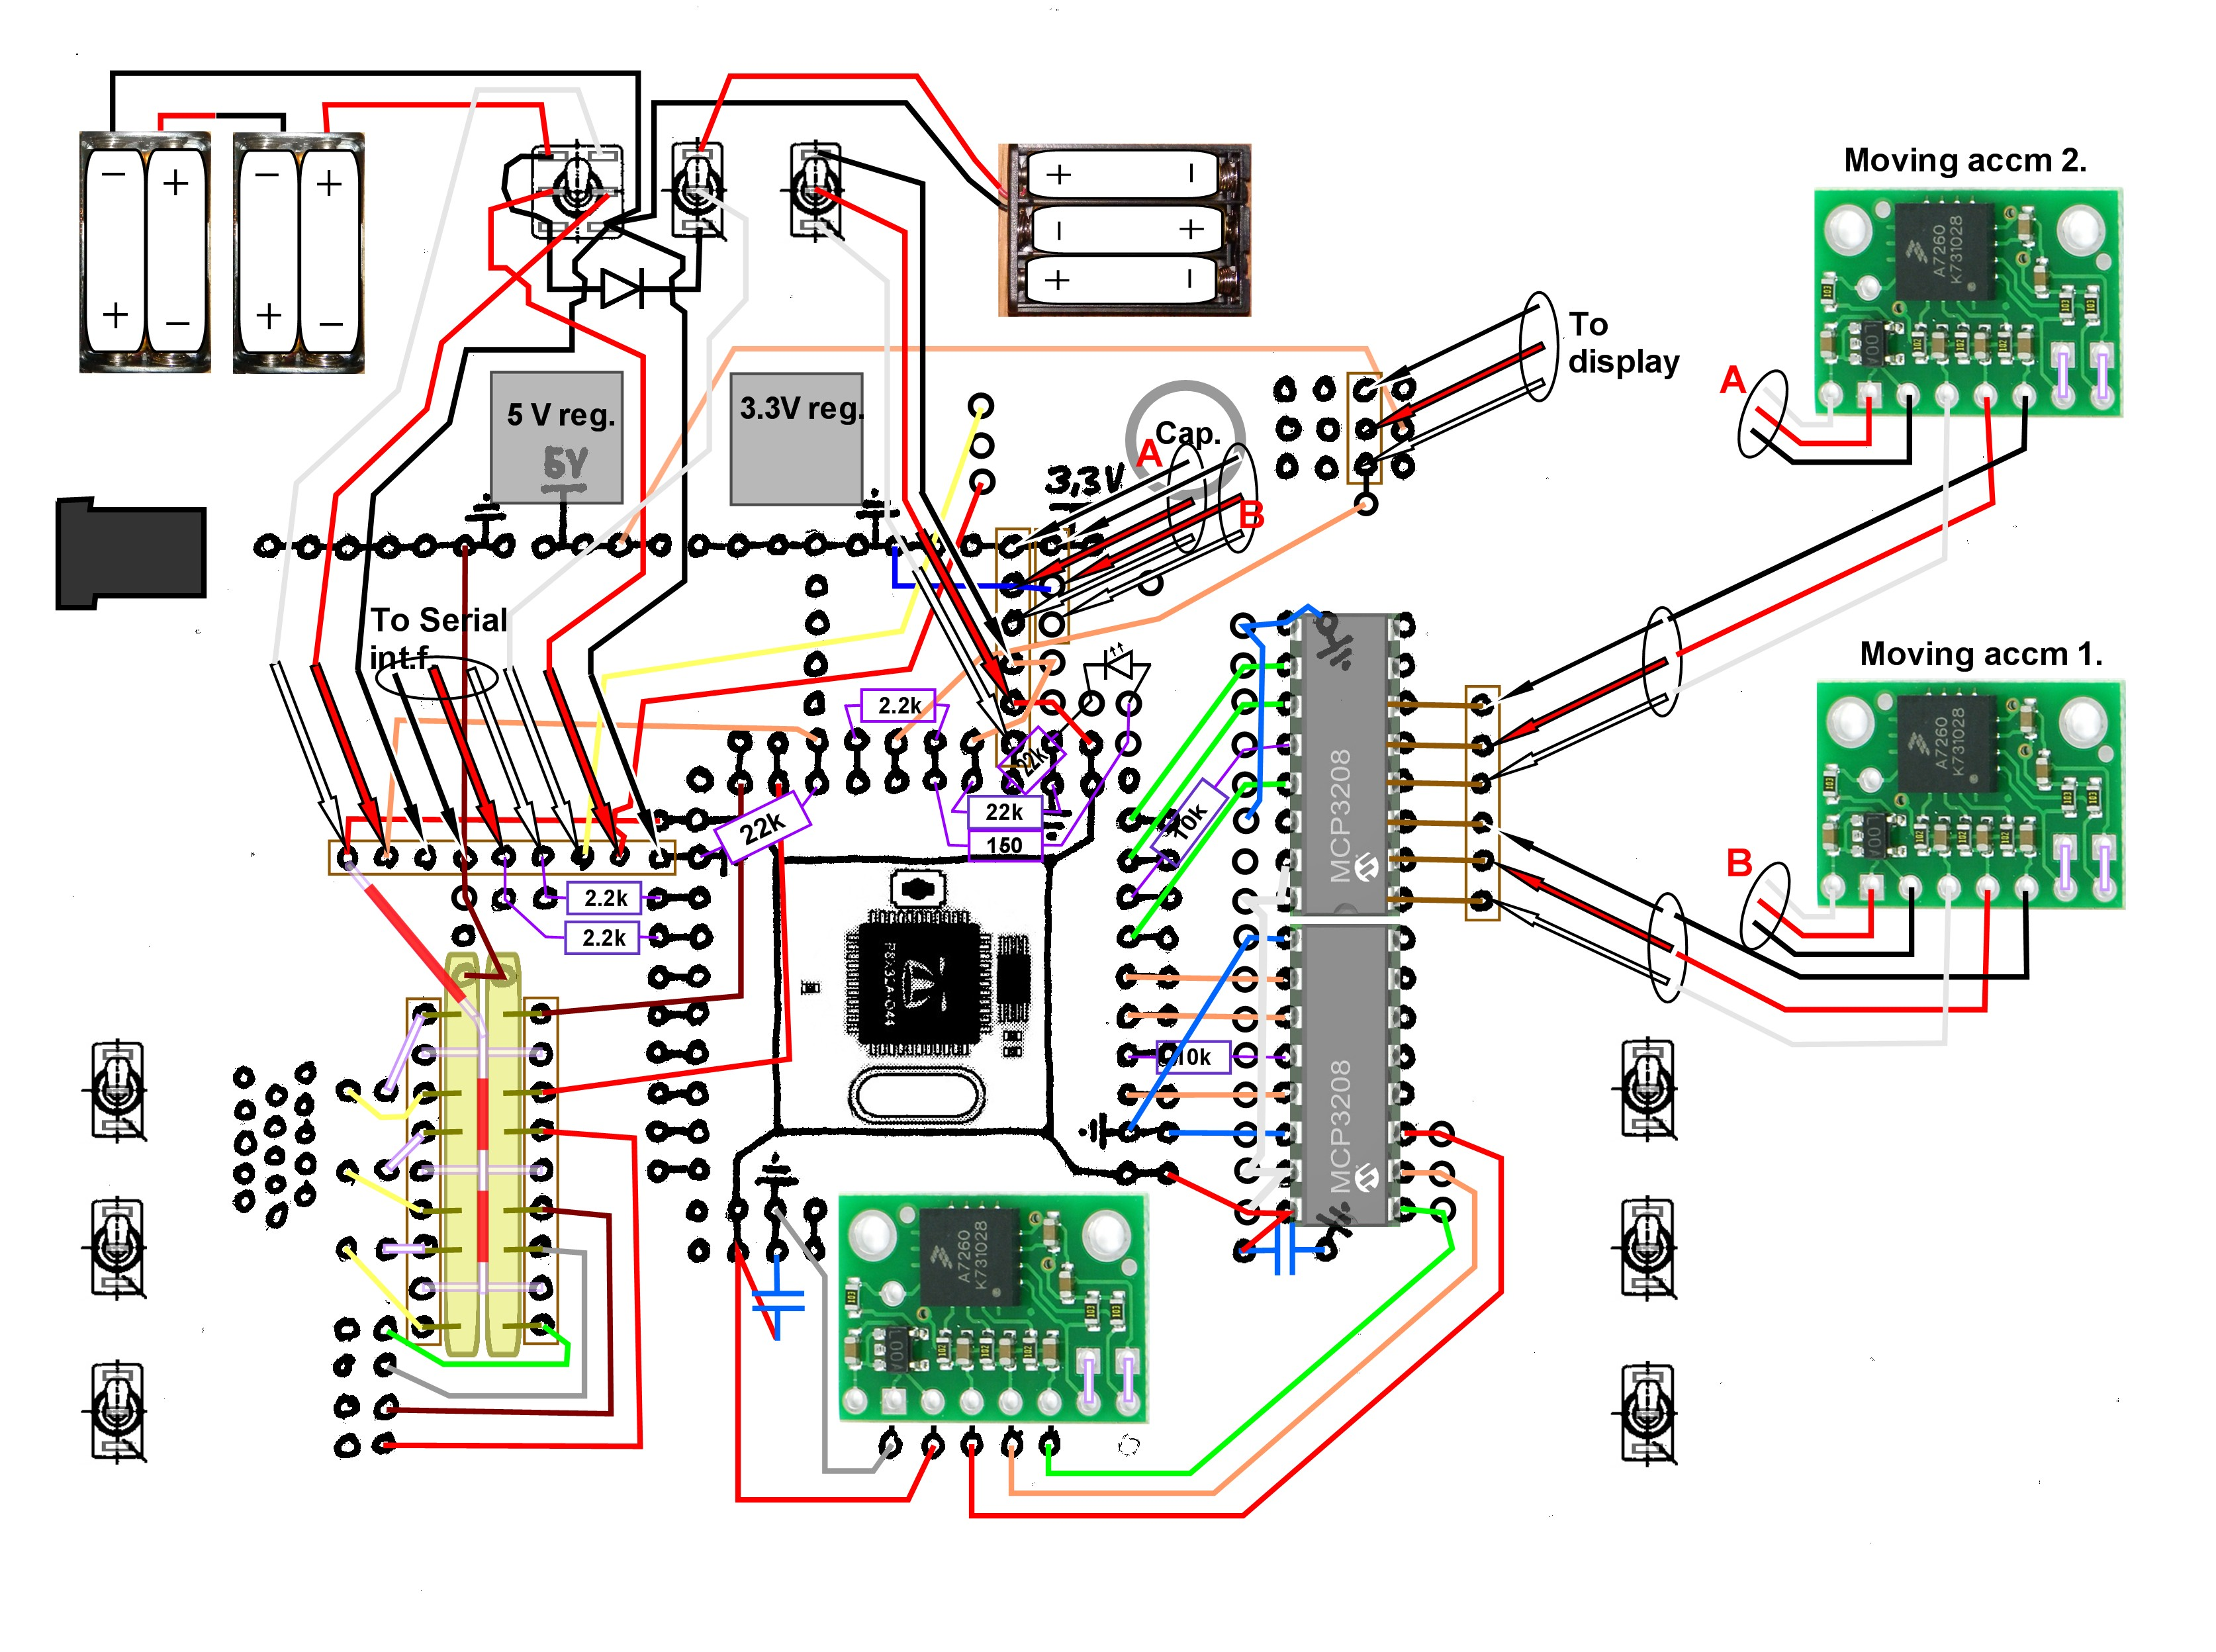 Click For A Bigger Image Of The Printed Circuit Boards